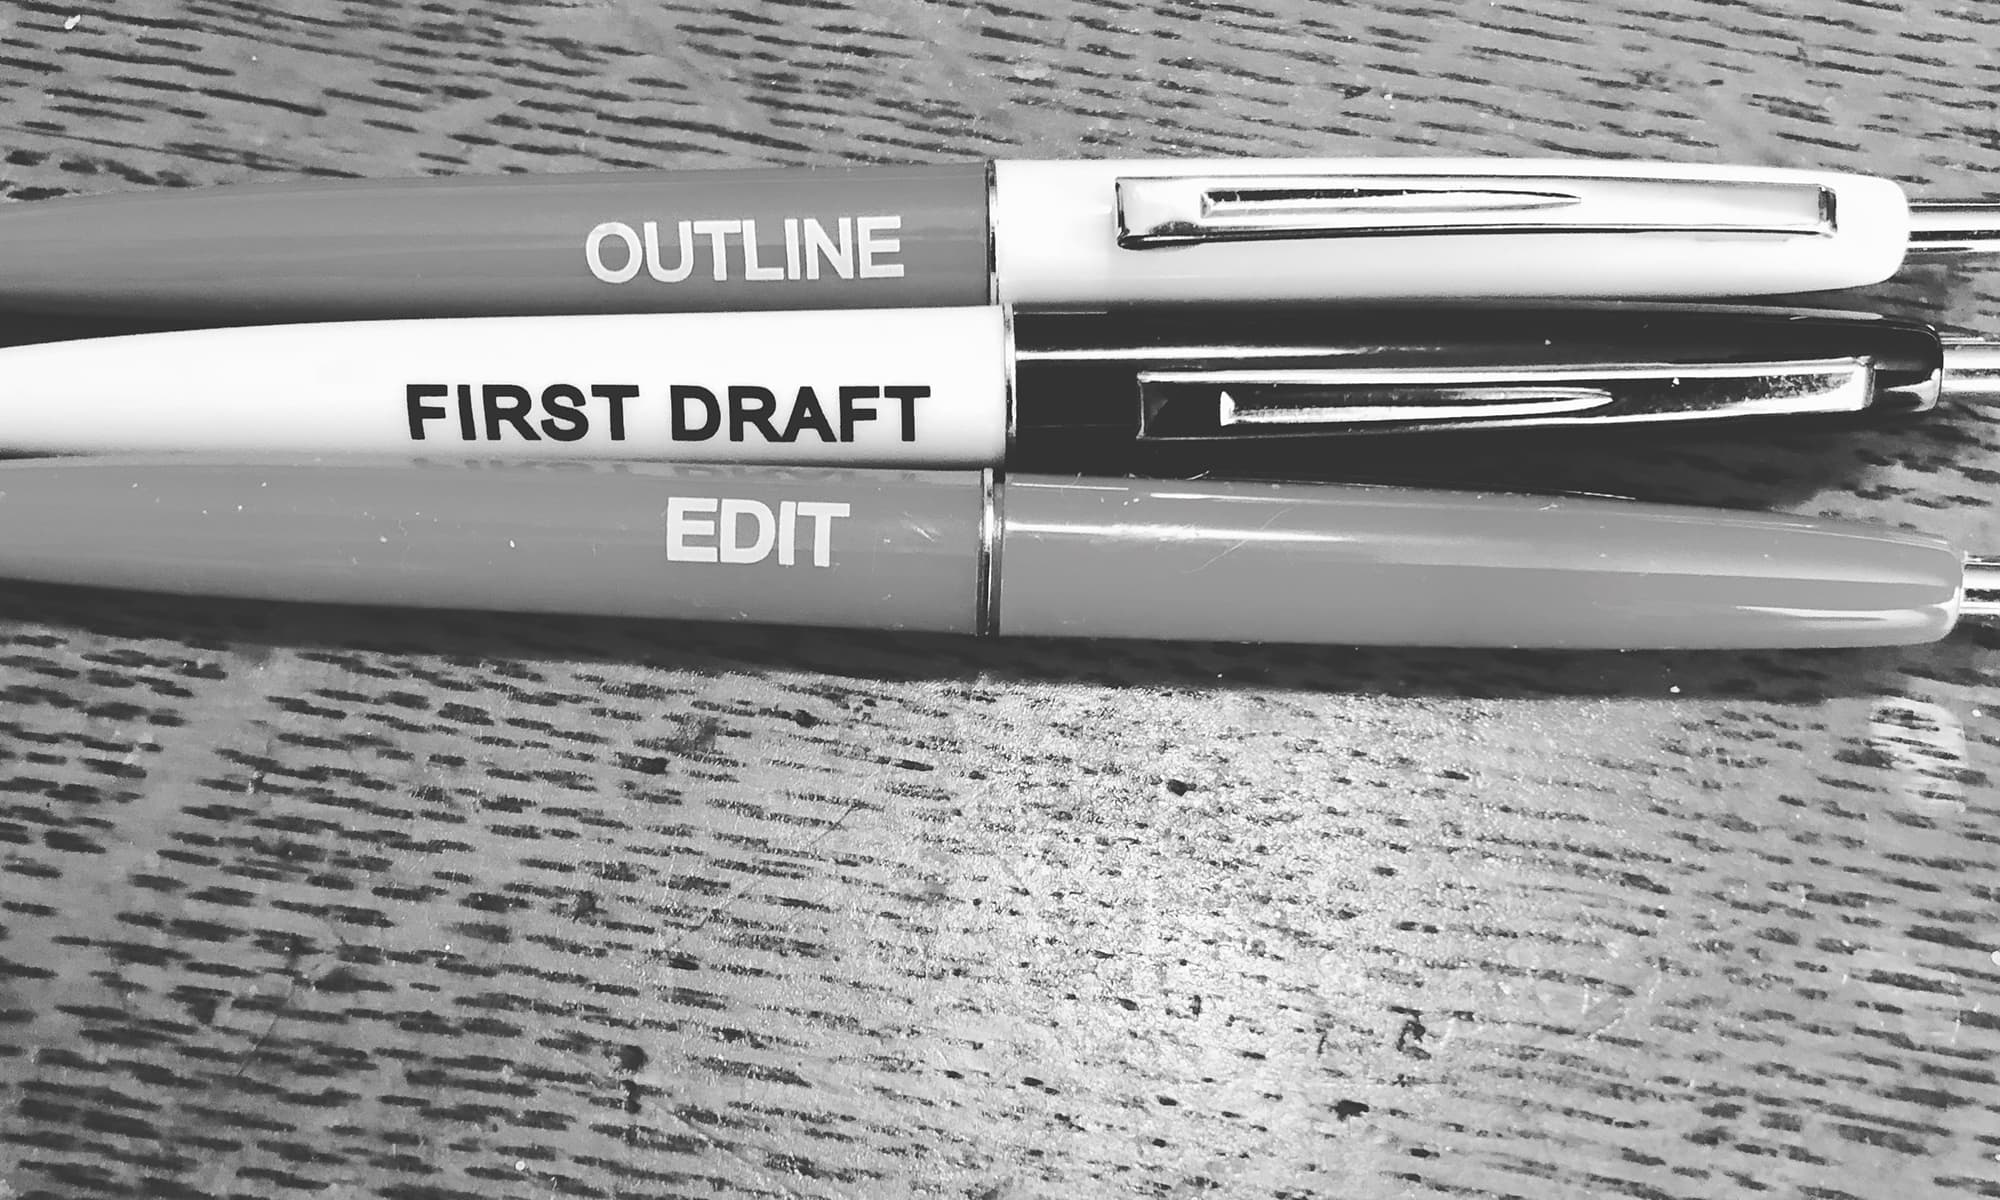 Three pens with the words Outline, First Draft, and Edit on them